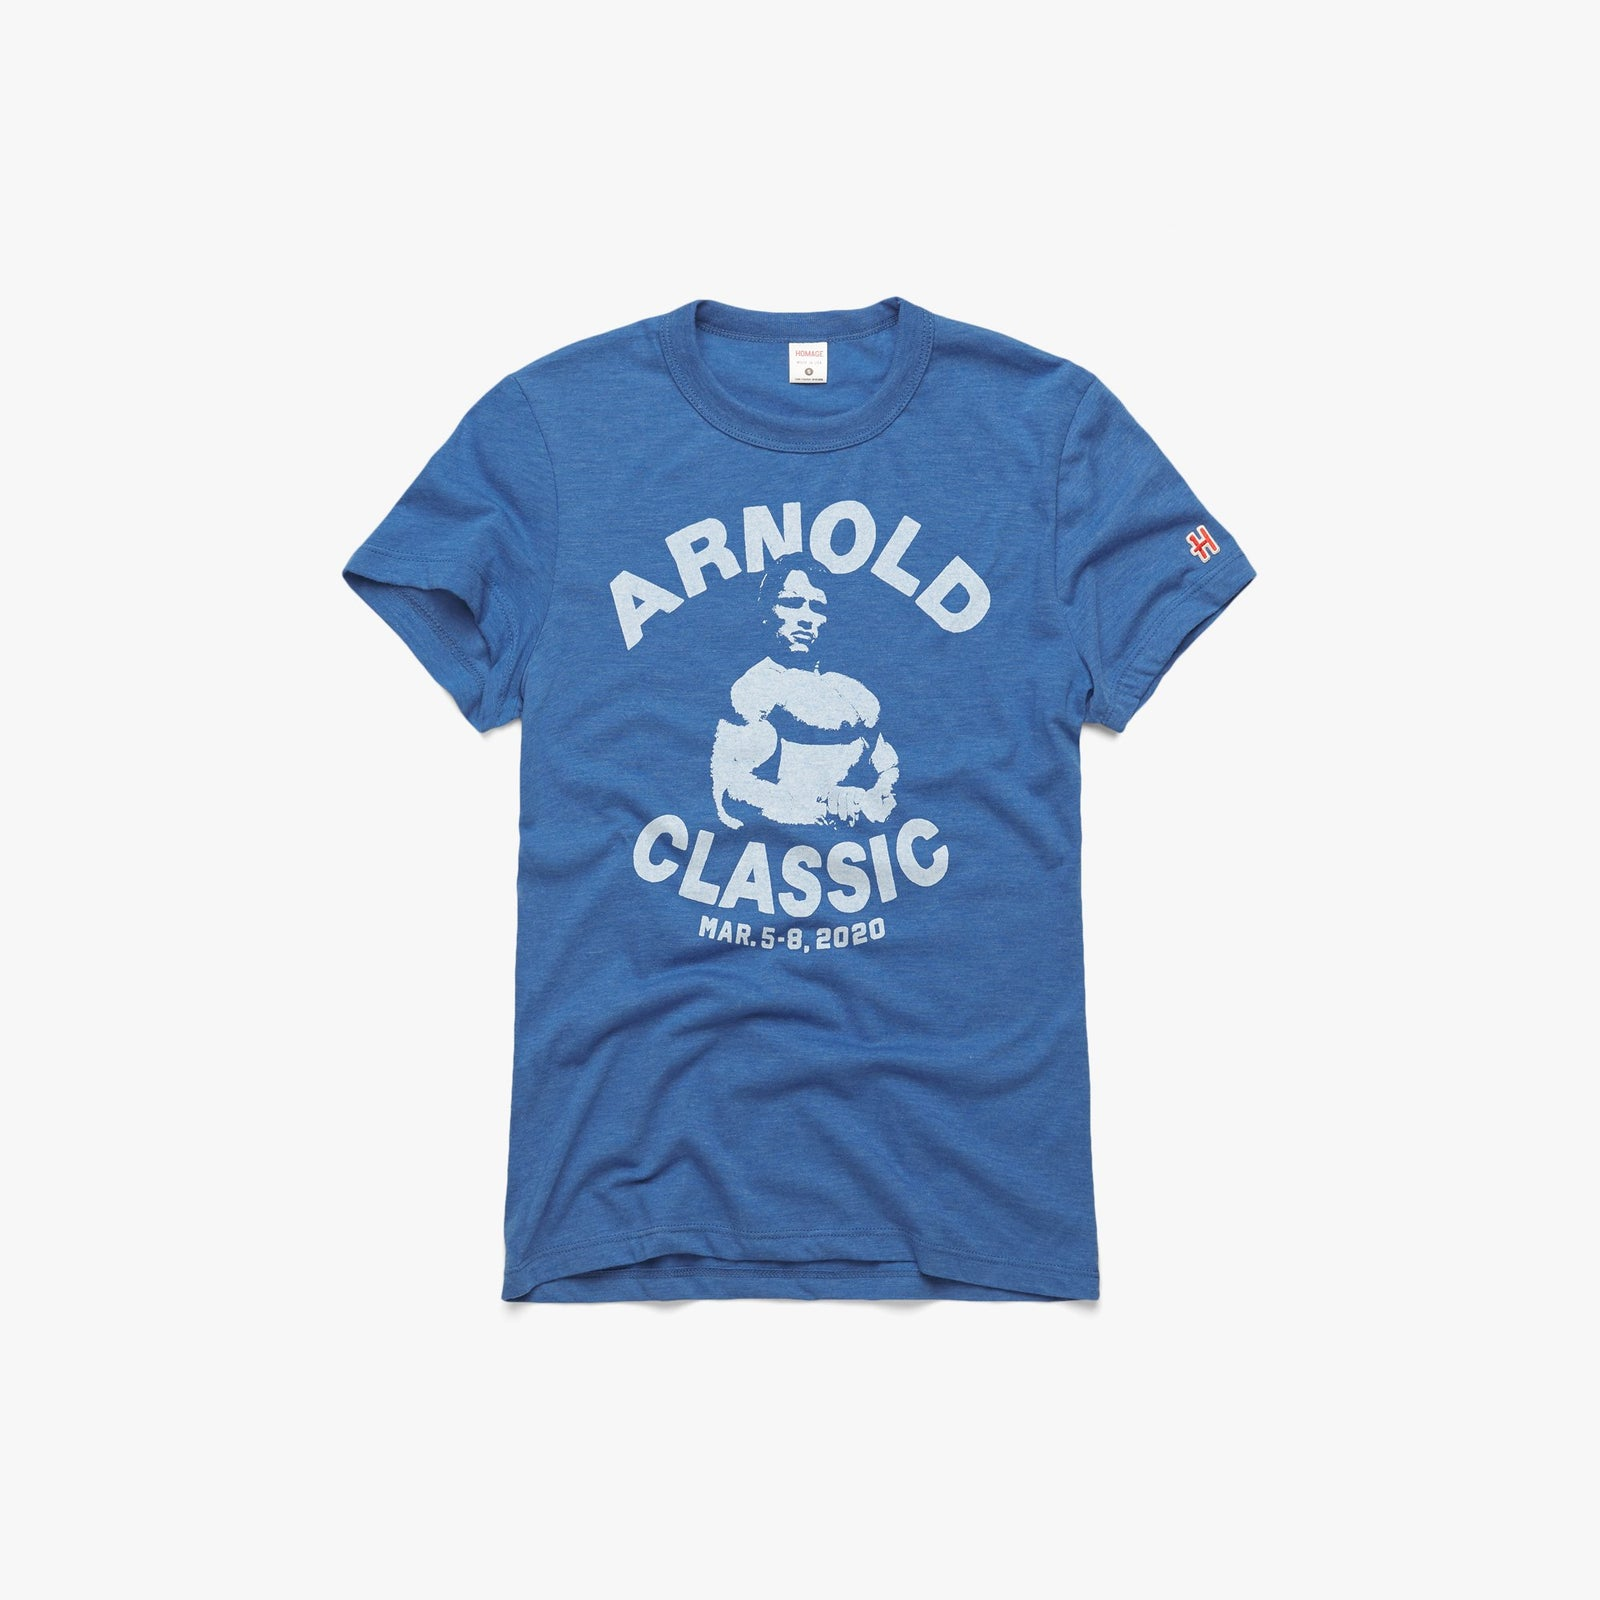 Women's Arnold Classic 2020 Vintage Tee